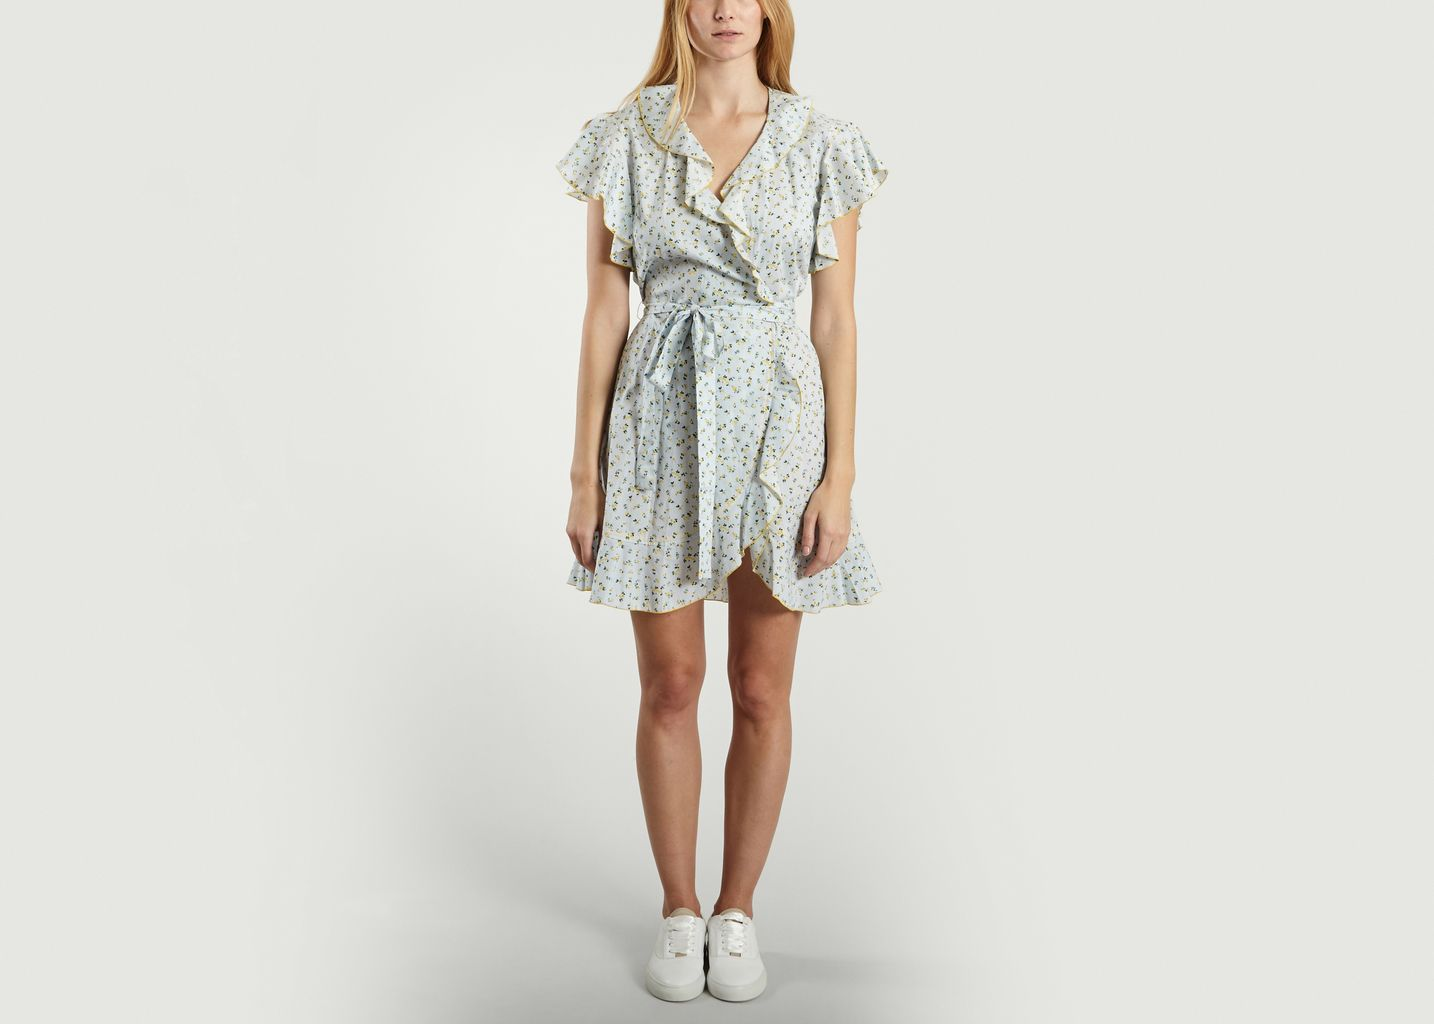 Ruffle Dress - Tara Jarmon